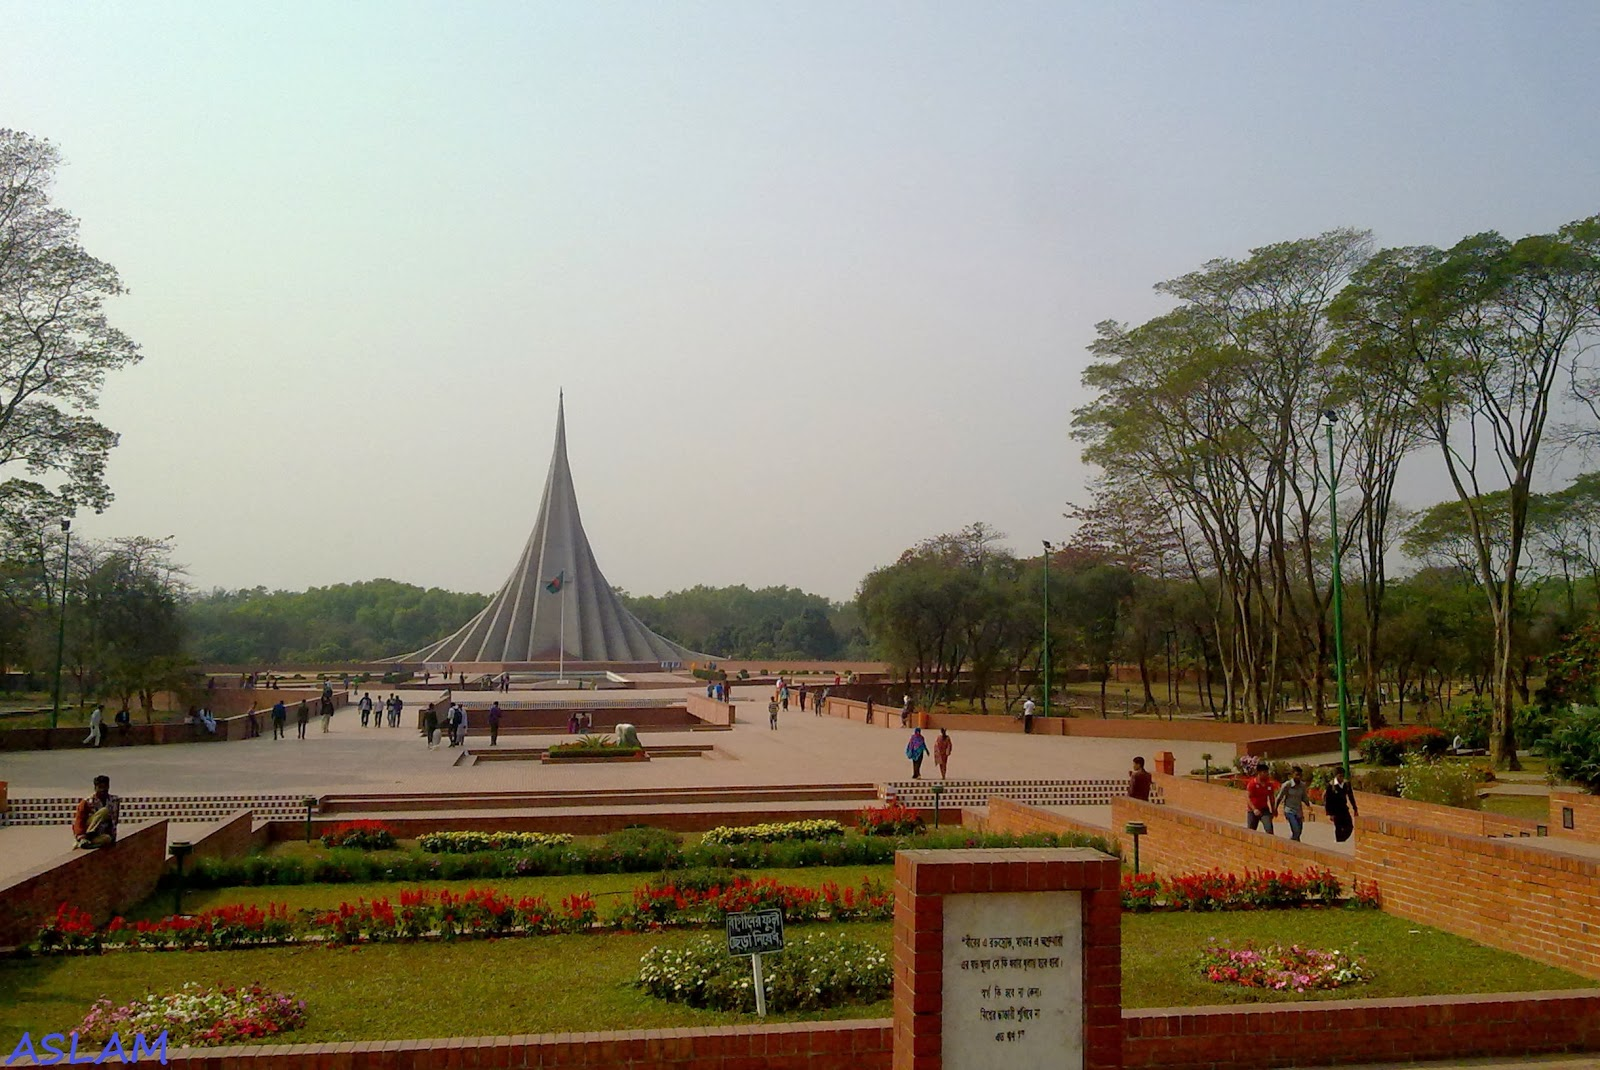 tourism in bd Best tour package price in bangladesh buy tour package at competitive price in bd from 109 tour package so choose the best tour package within your budget mobile.